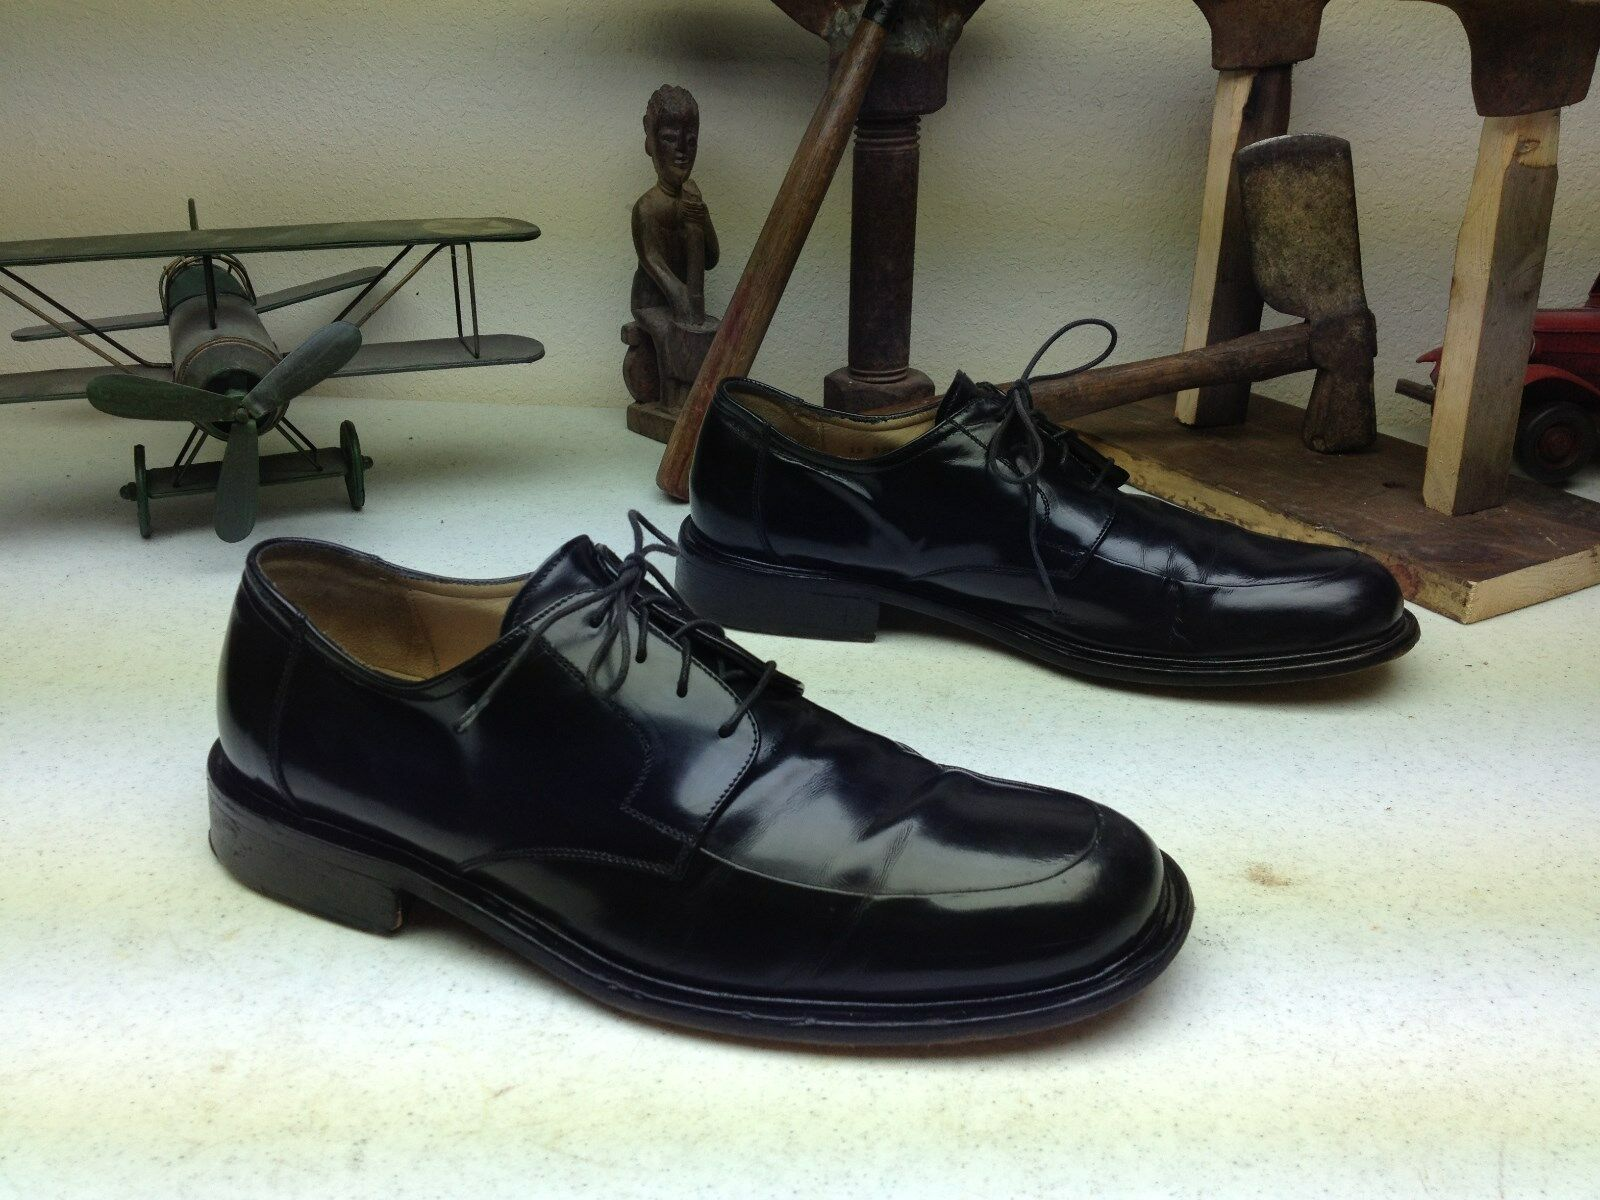 schwarz MADE LEATHER JOHNSTON MURPHY MADE schwarz IN ITALY LACE UP OXFORD BUSINESS schuhe 9.5 M bbebdb